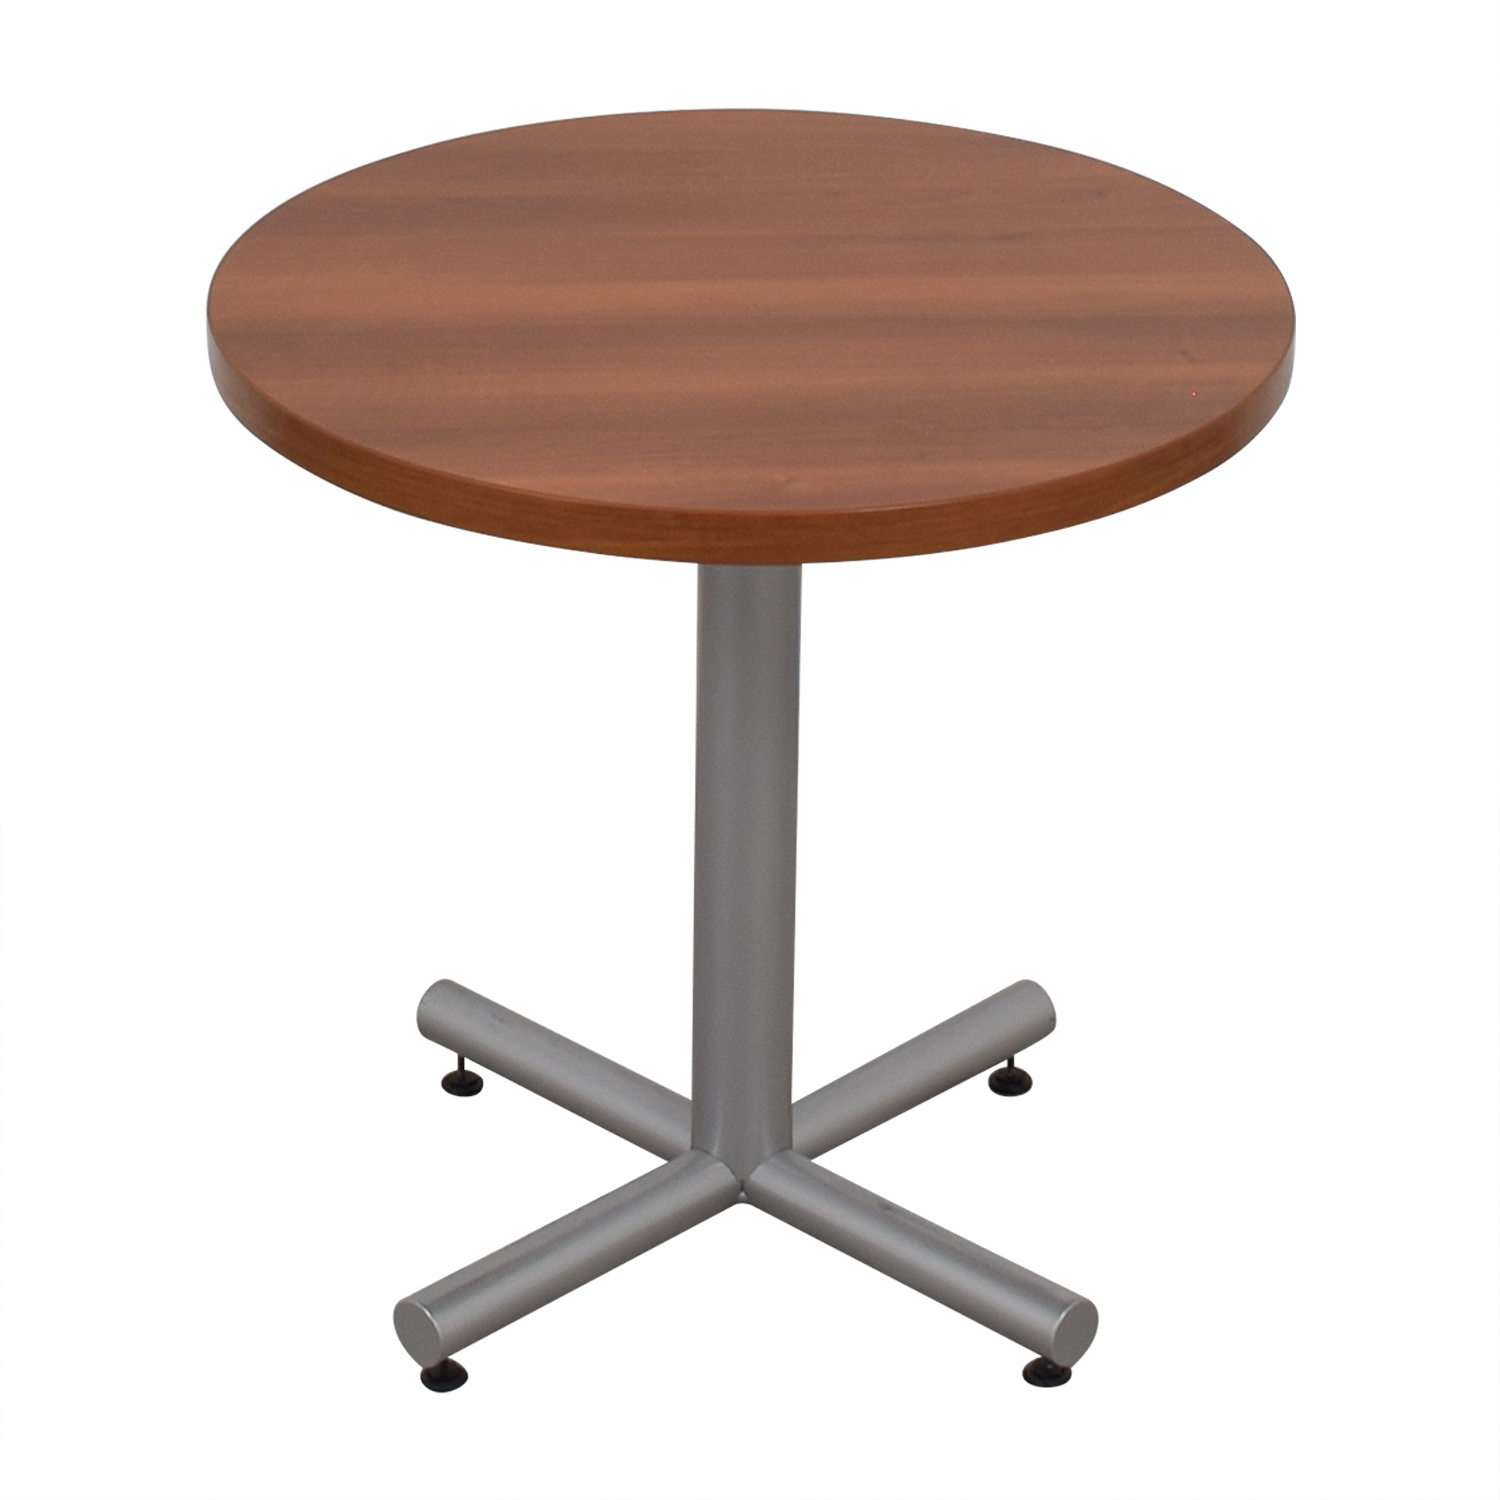 shop  Small Round Office Table online